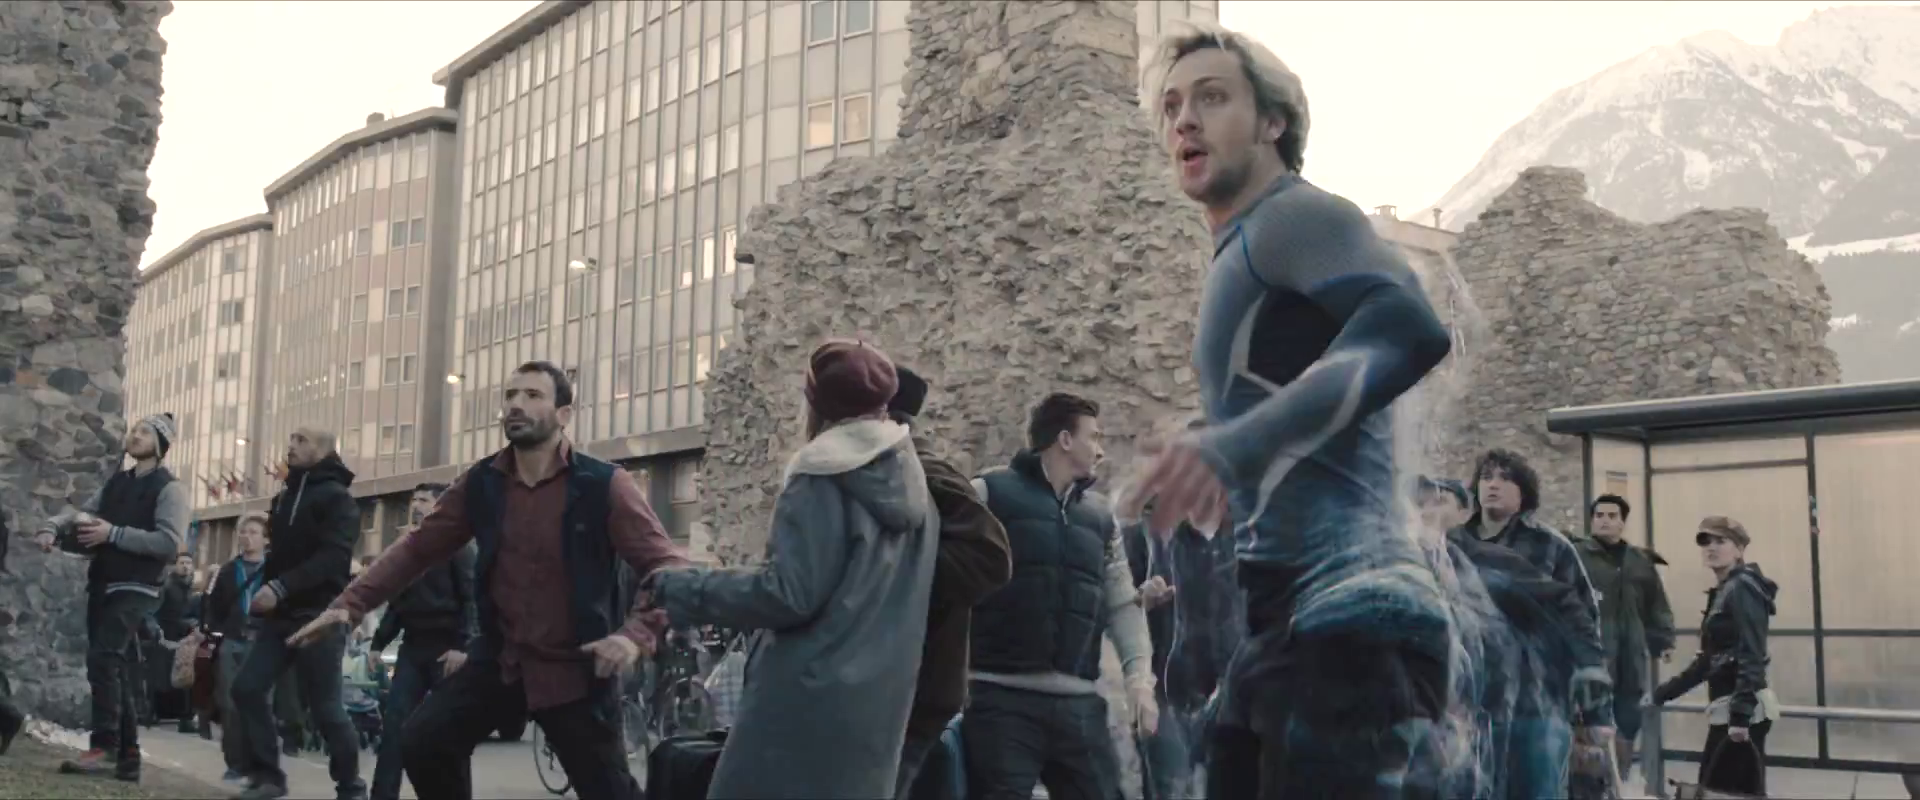 avengers-age-of-ultron-trailer-screengrab-29-aaron-taylor-johnson.png